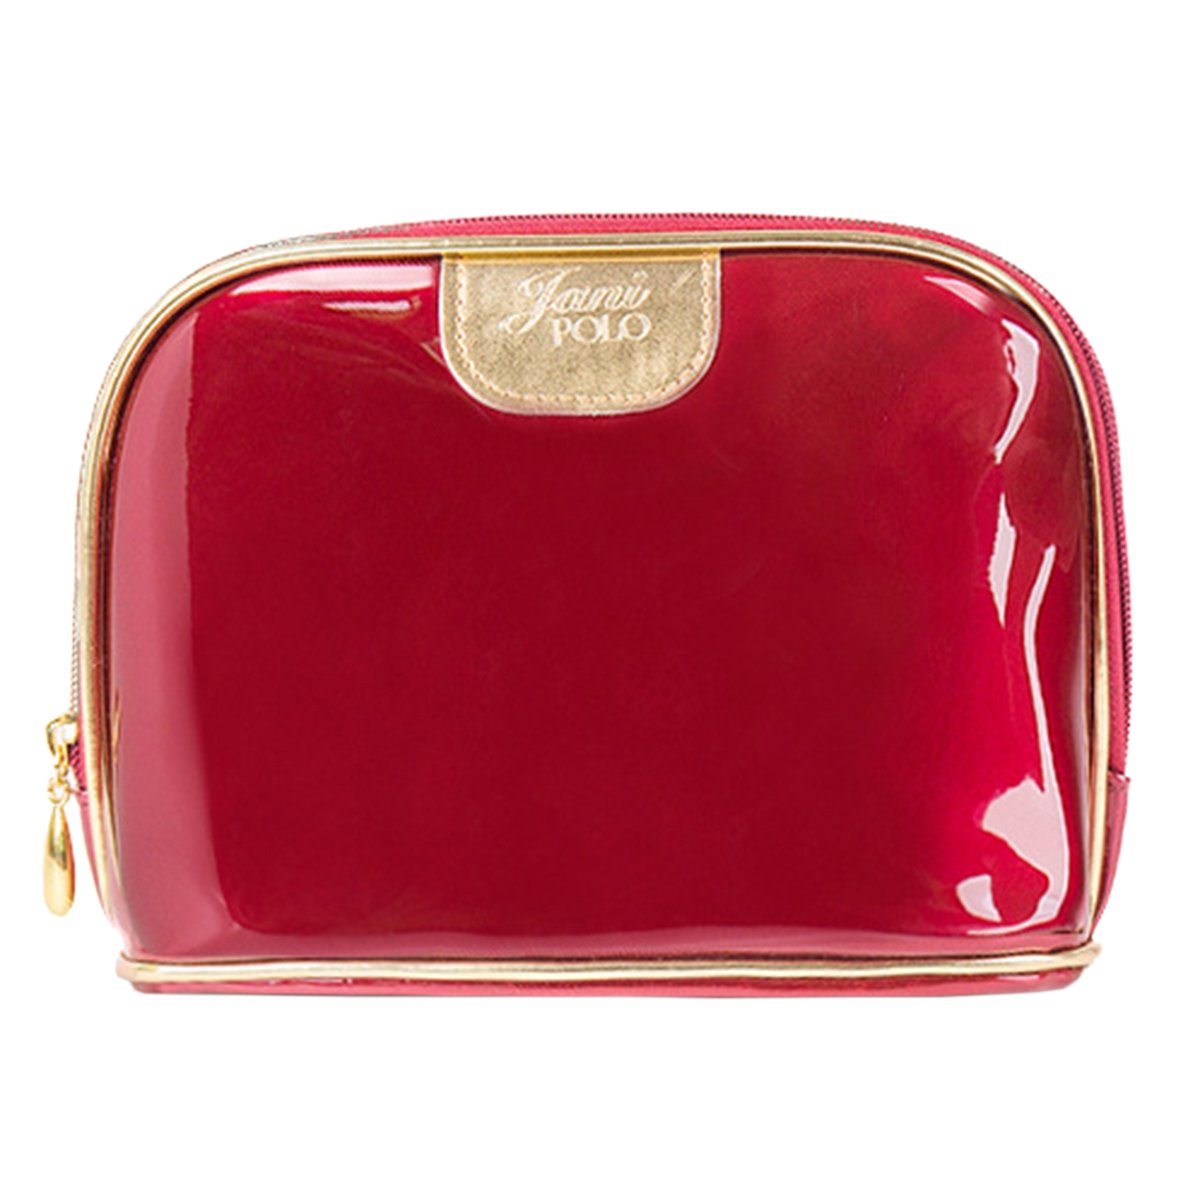 THEE Women Portable Travel Toiletry Bag Cosmetic Makeup Pouch Patent Leather